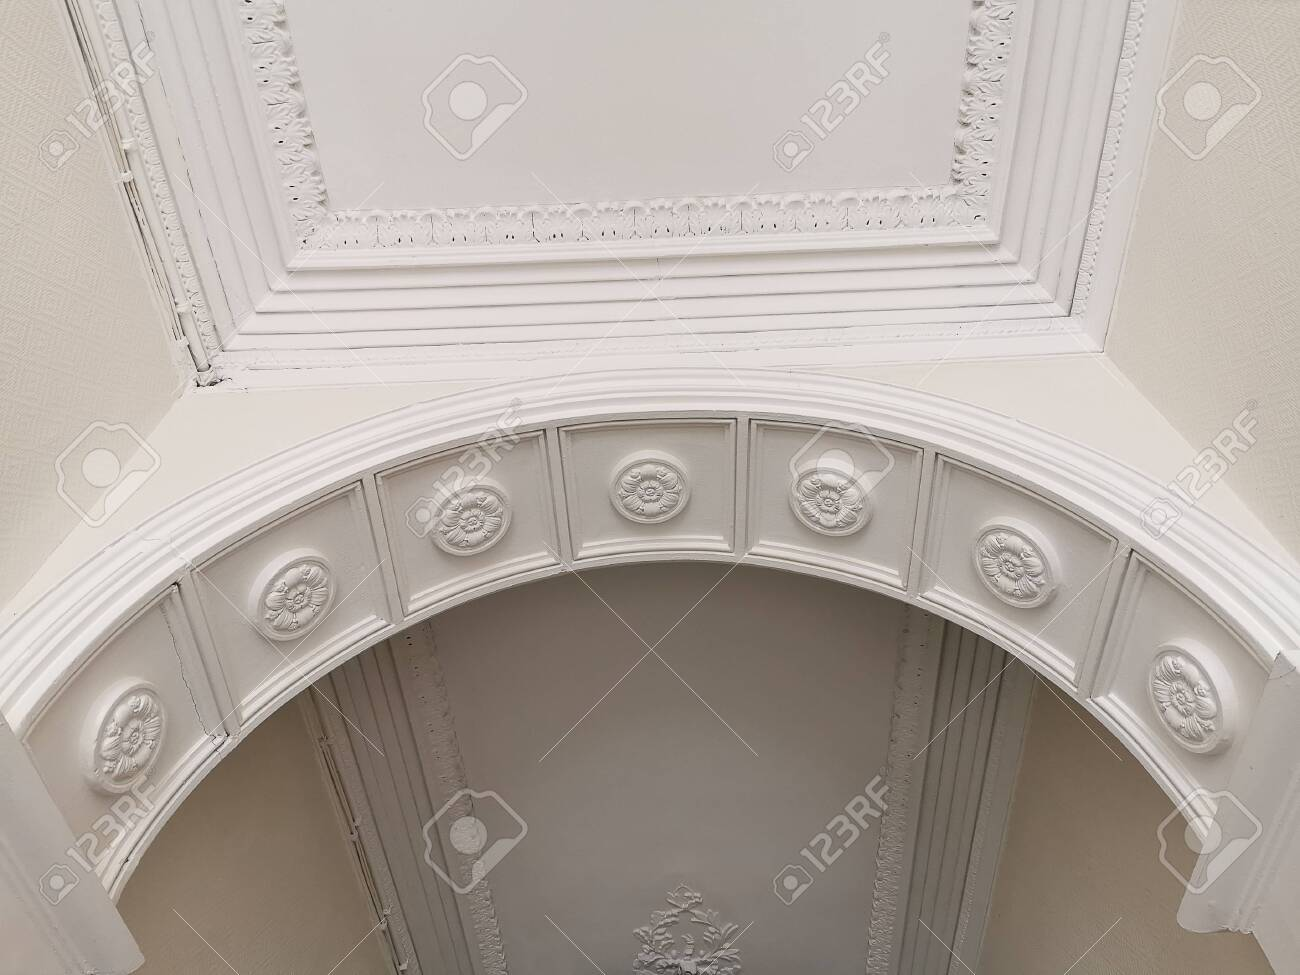 House interior view of vault ceiling arch with crown moldings and sculptures - 139471004